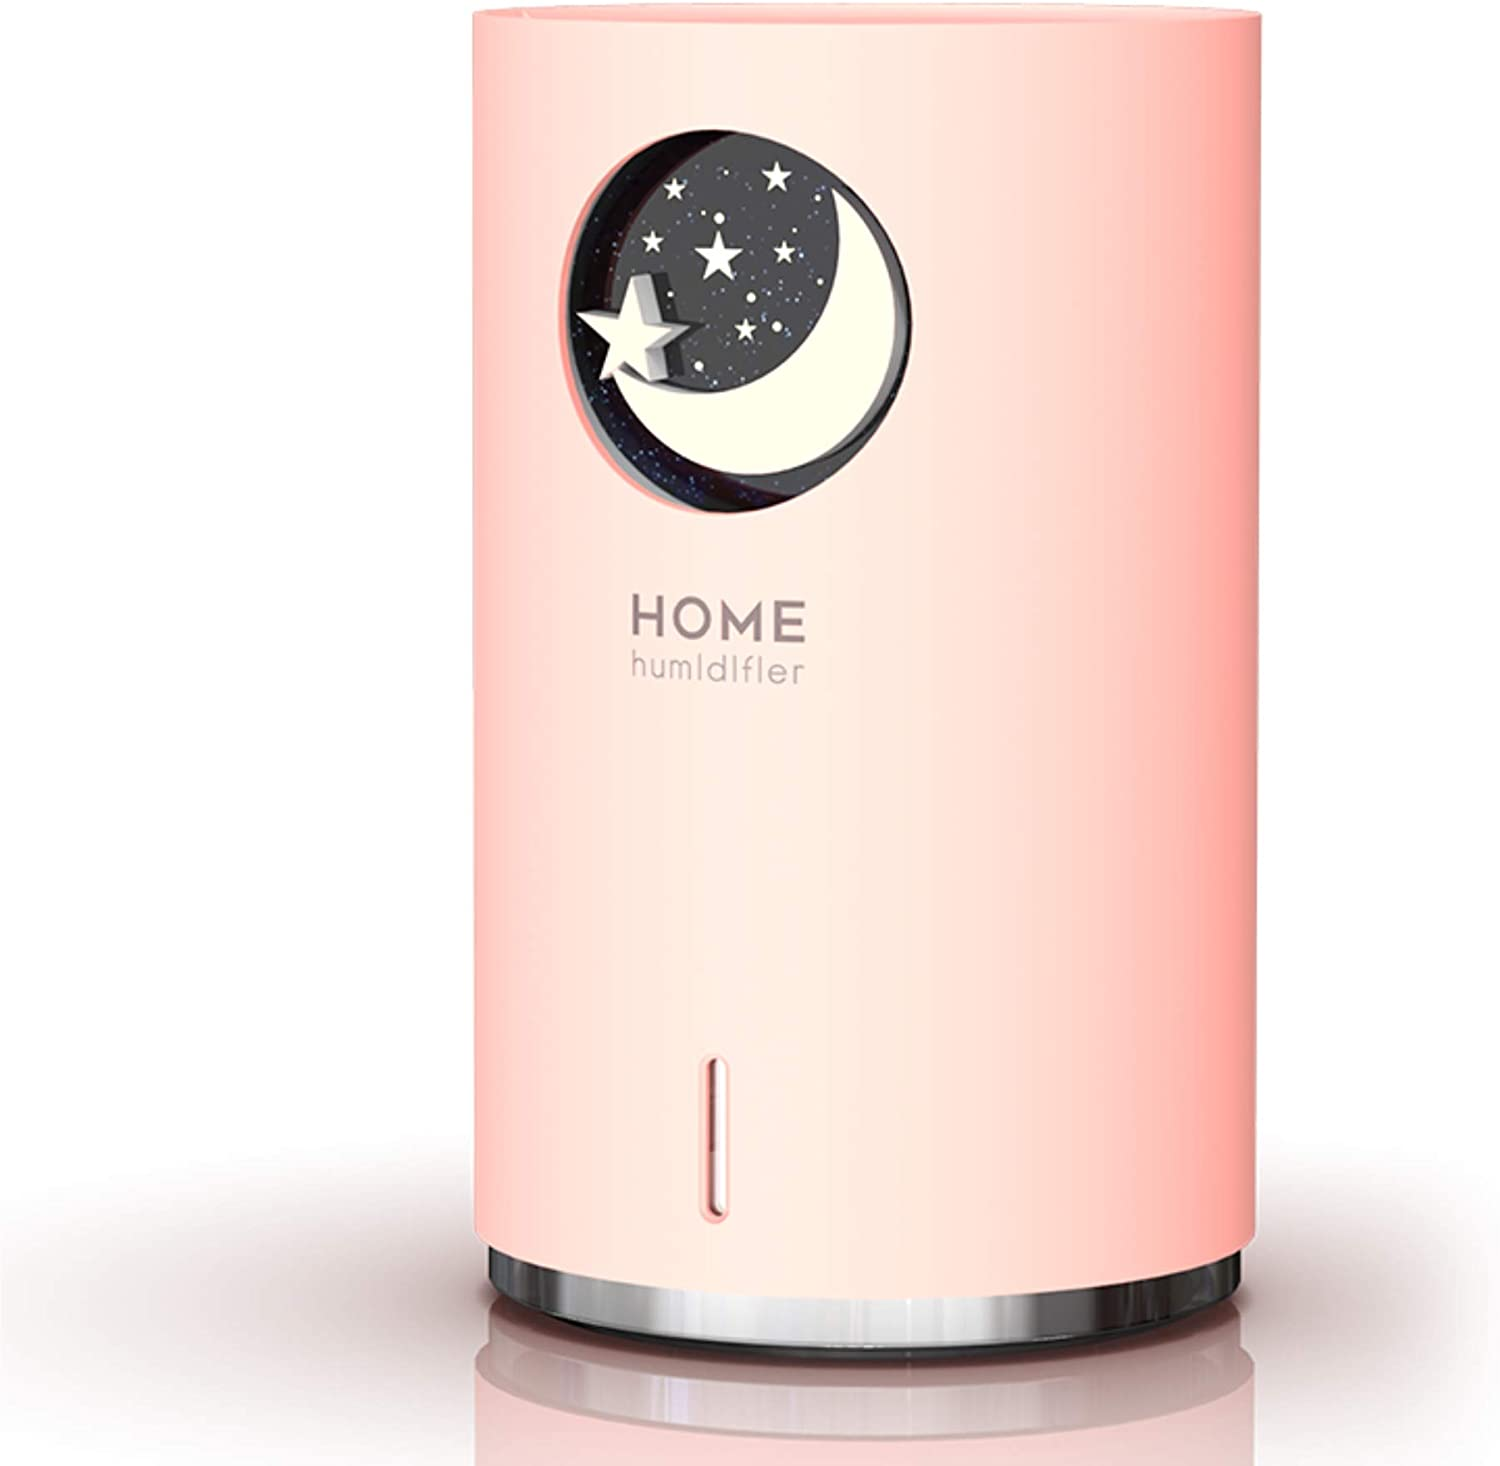 Sicsmiao Ultrasonic Mist Humidifier, Mini Portable humidifier for Bedroom, Adjustable Mist Mode and Auto Shut-Off, 700ml Water Tank, 7 Color Night Light, Suitable for Home, Office, Baby Room (Pink)